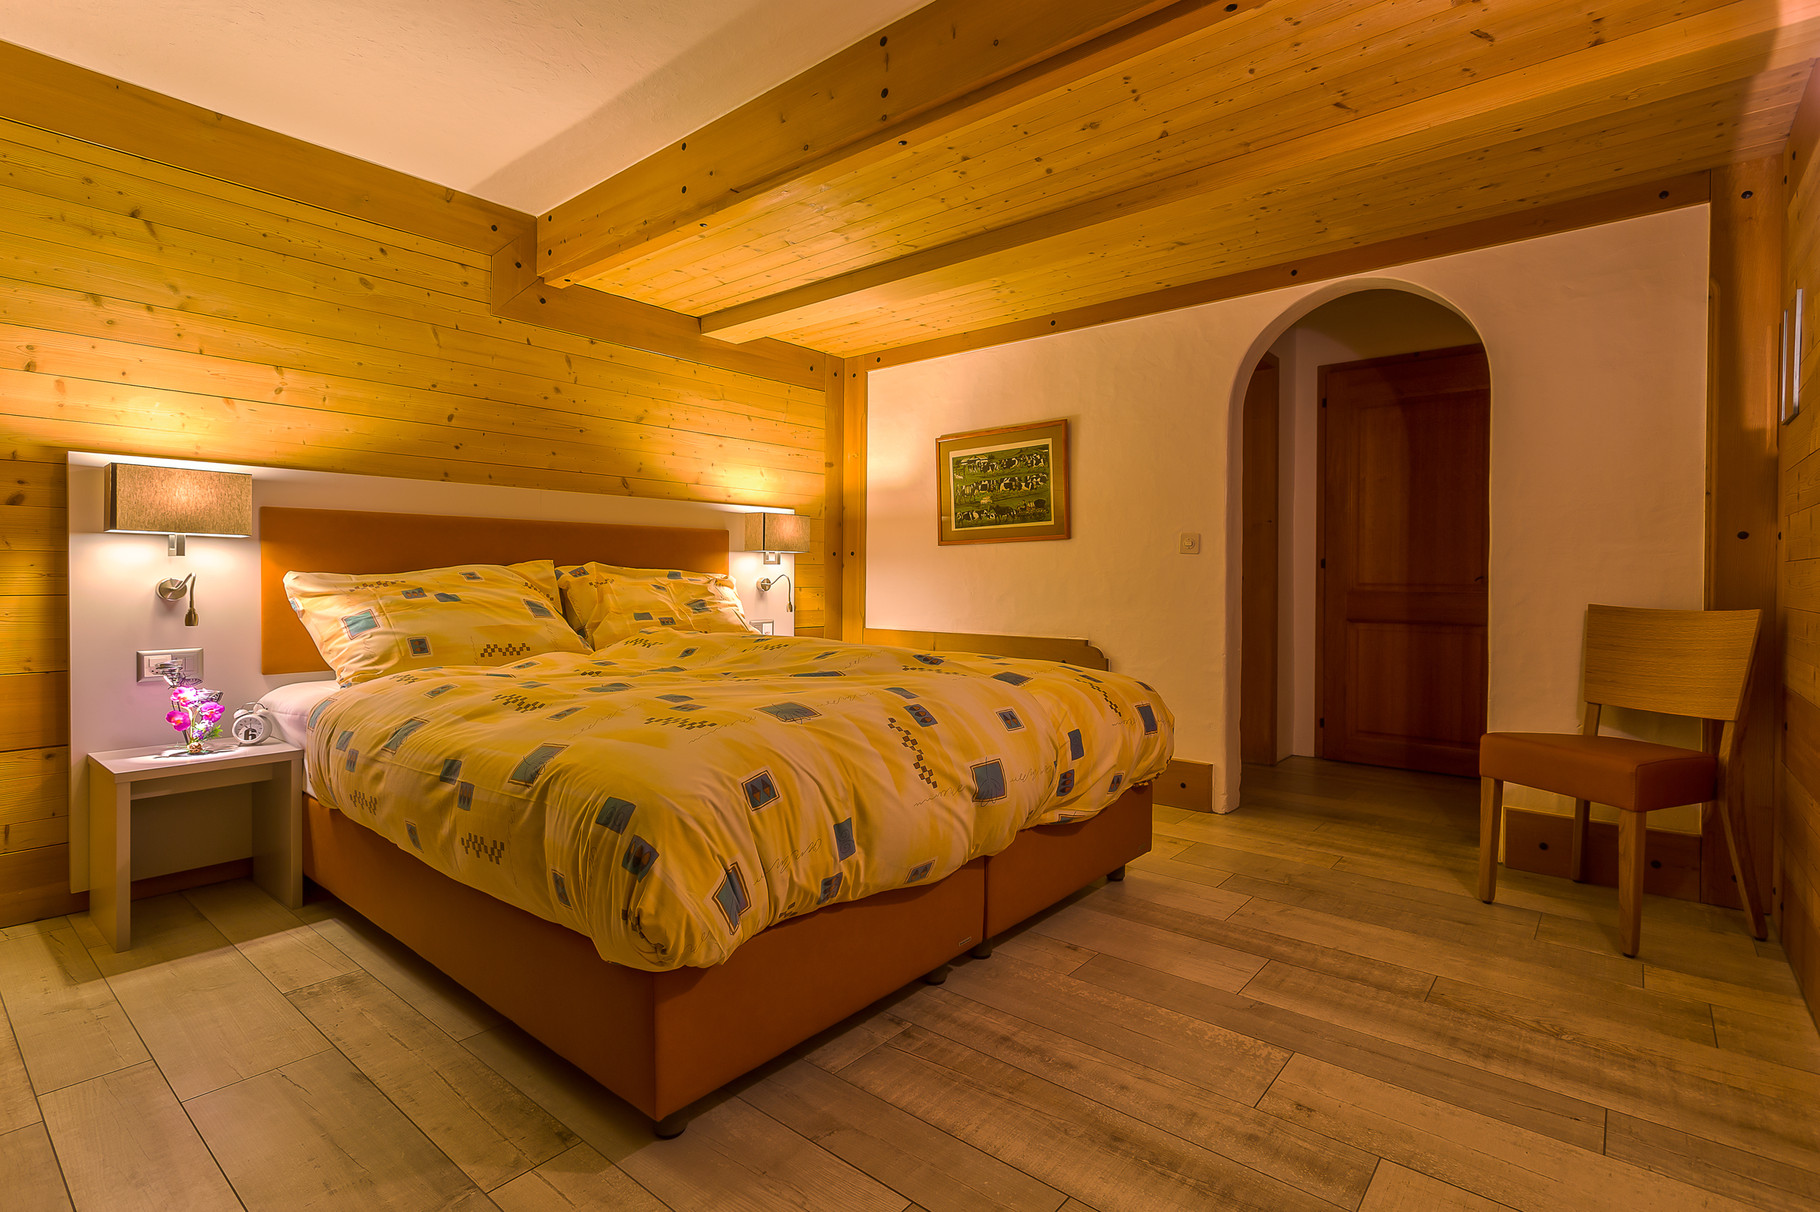 The sleeping side, with one king size or two single bed